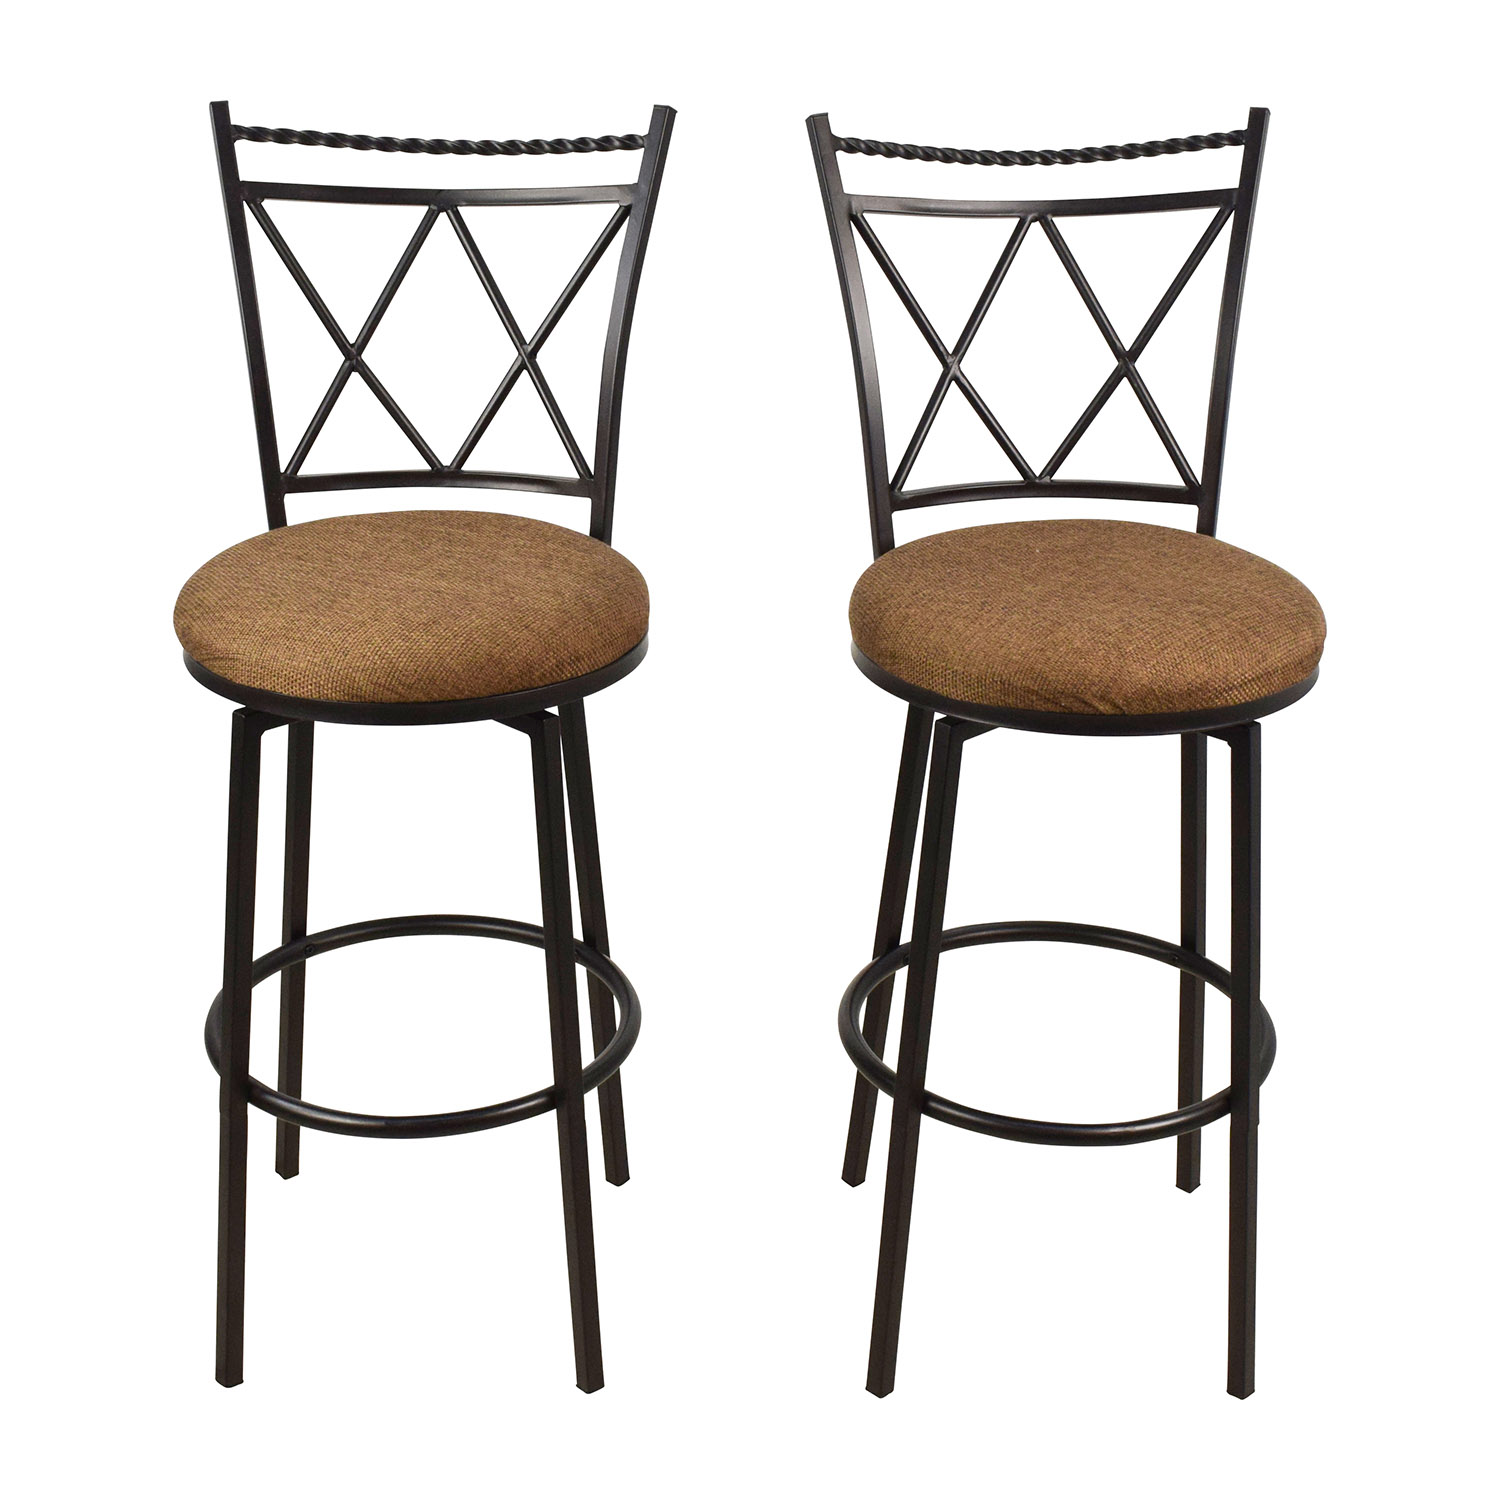 Nd hand bar stools counter height on a budget